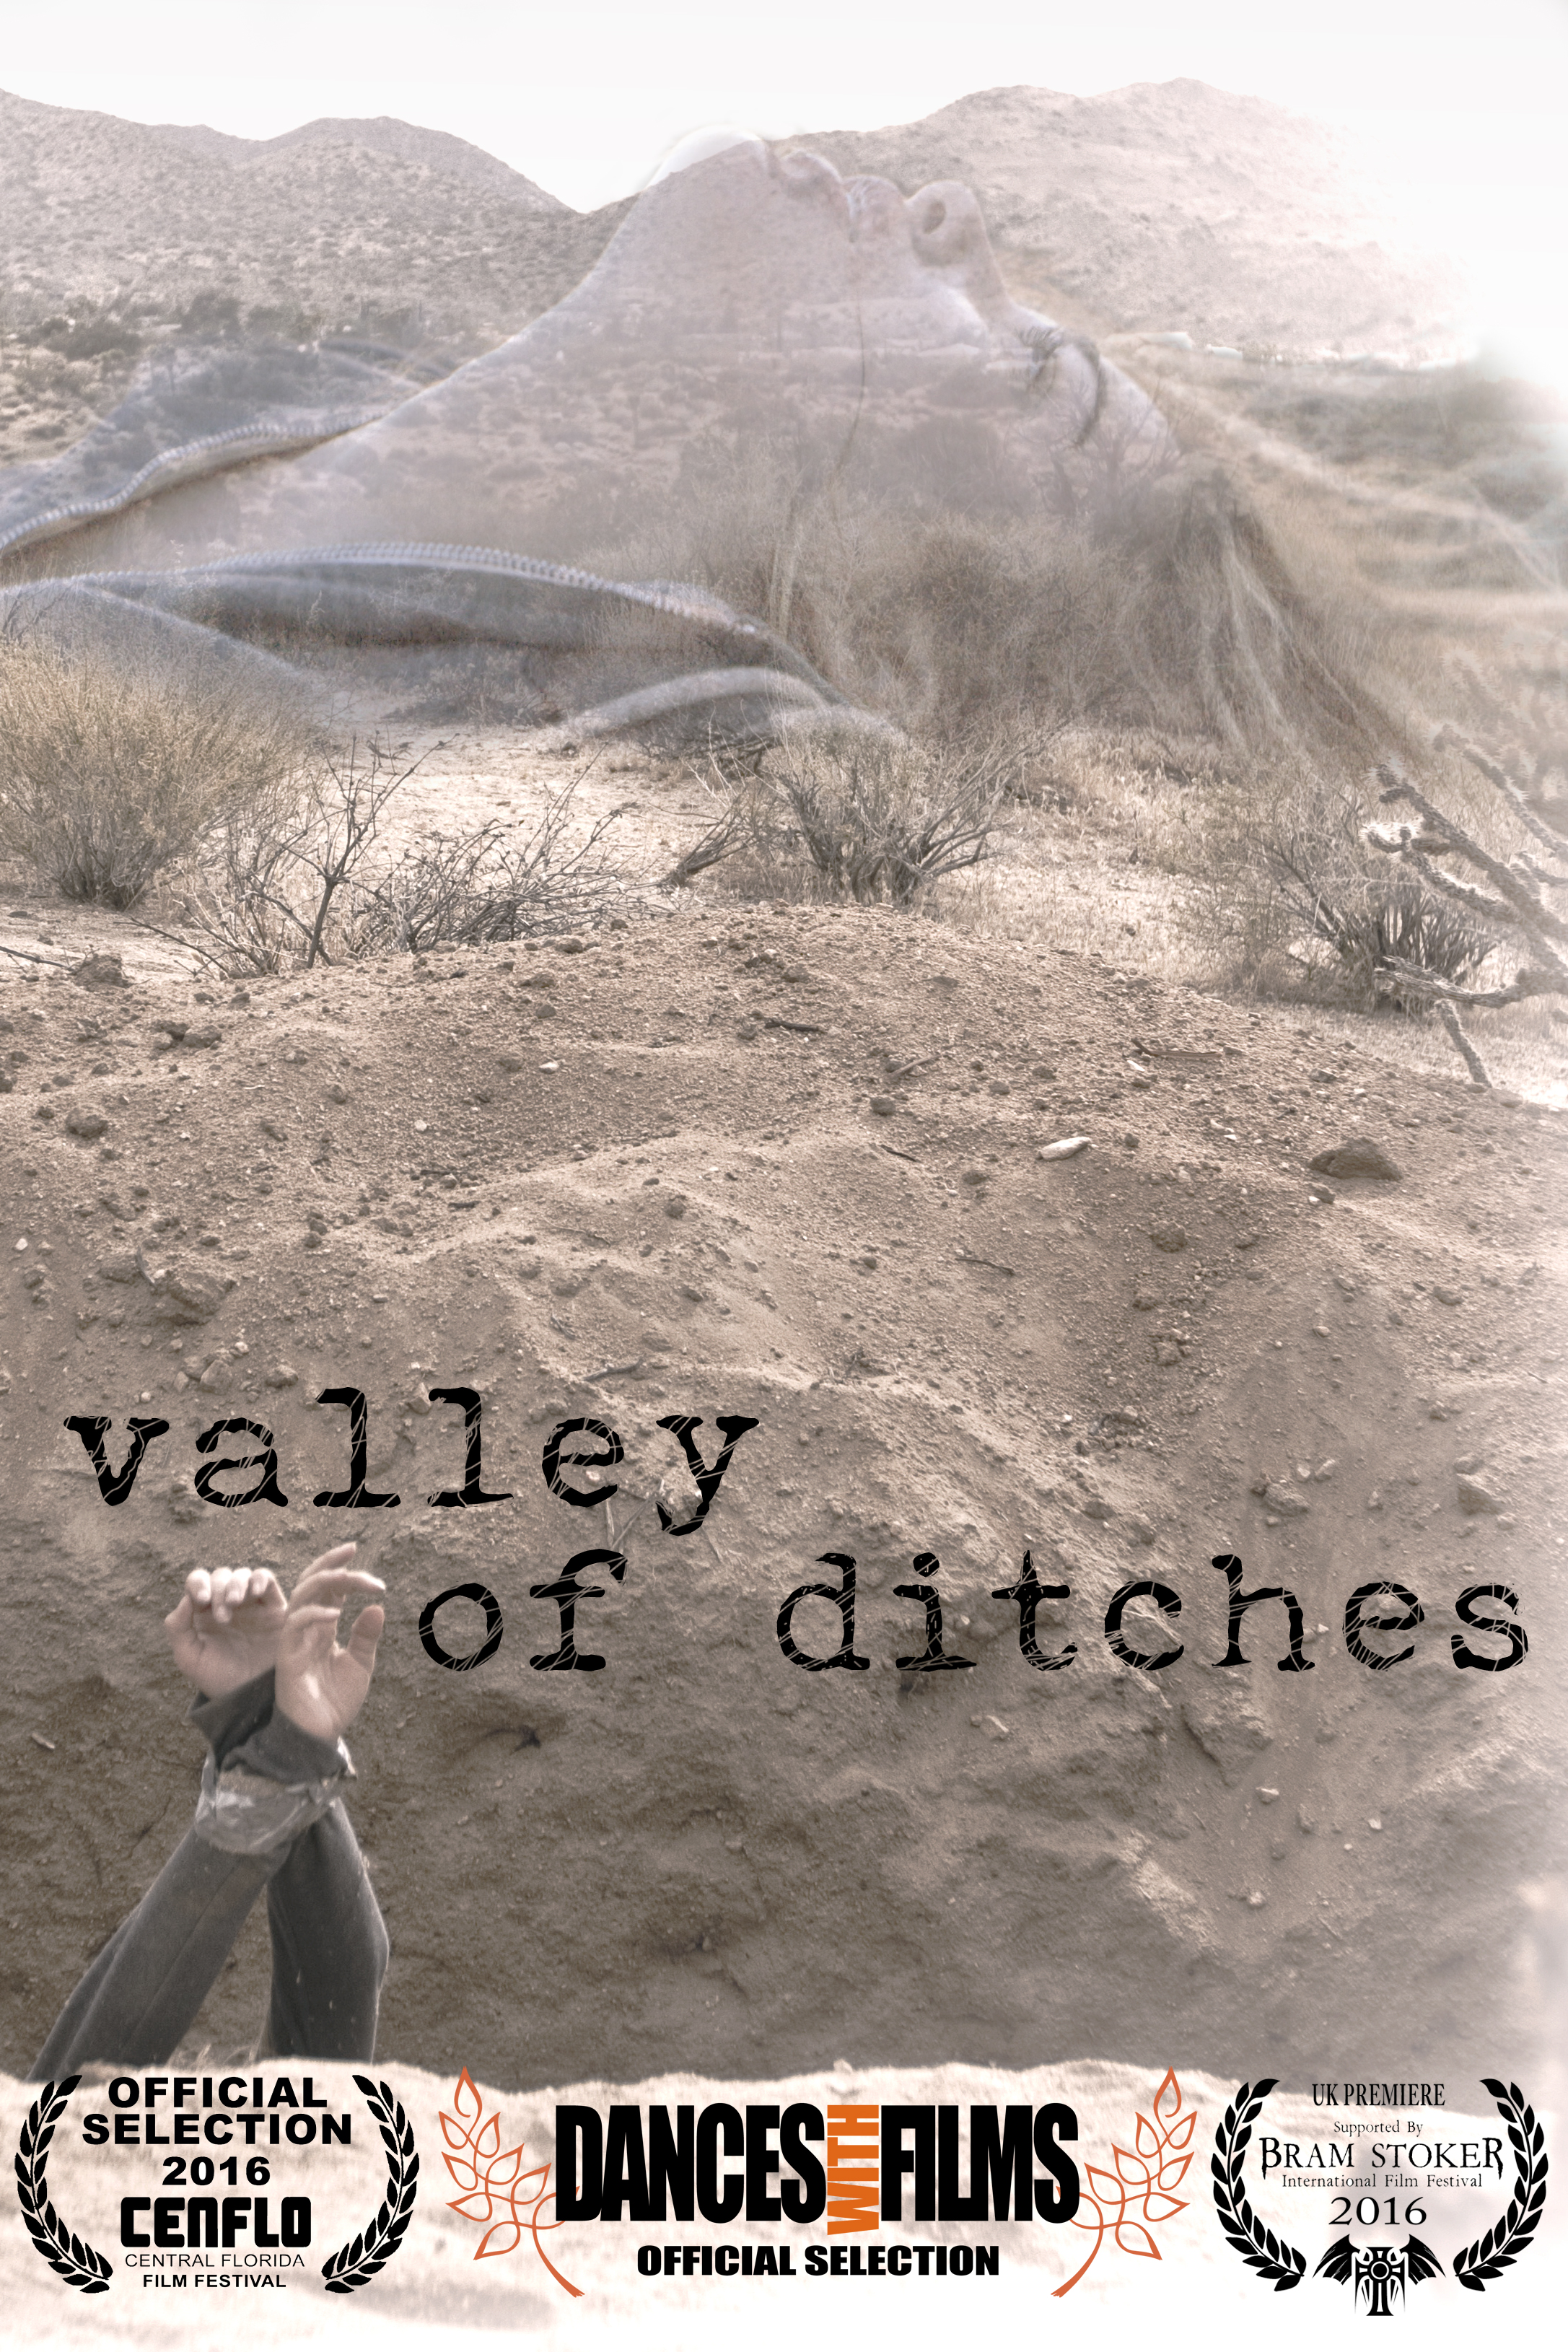 Долина ям - Valley of Ditches